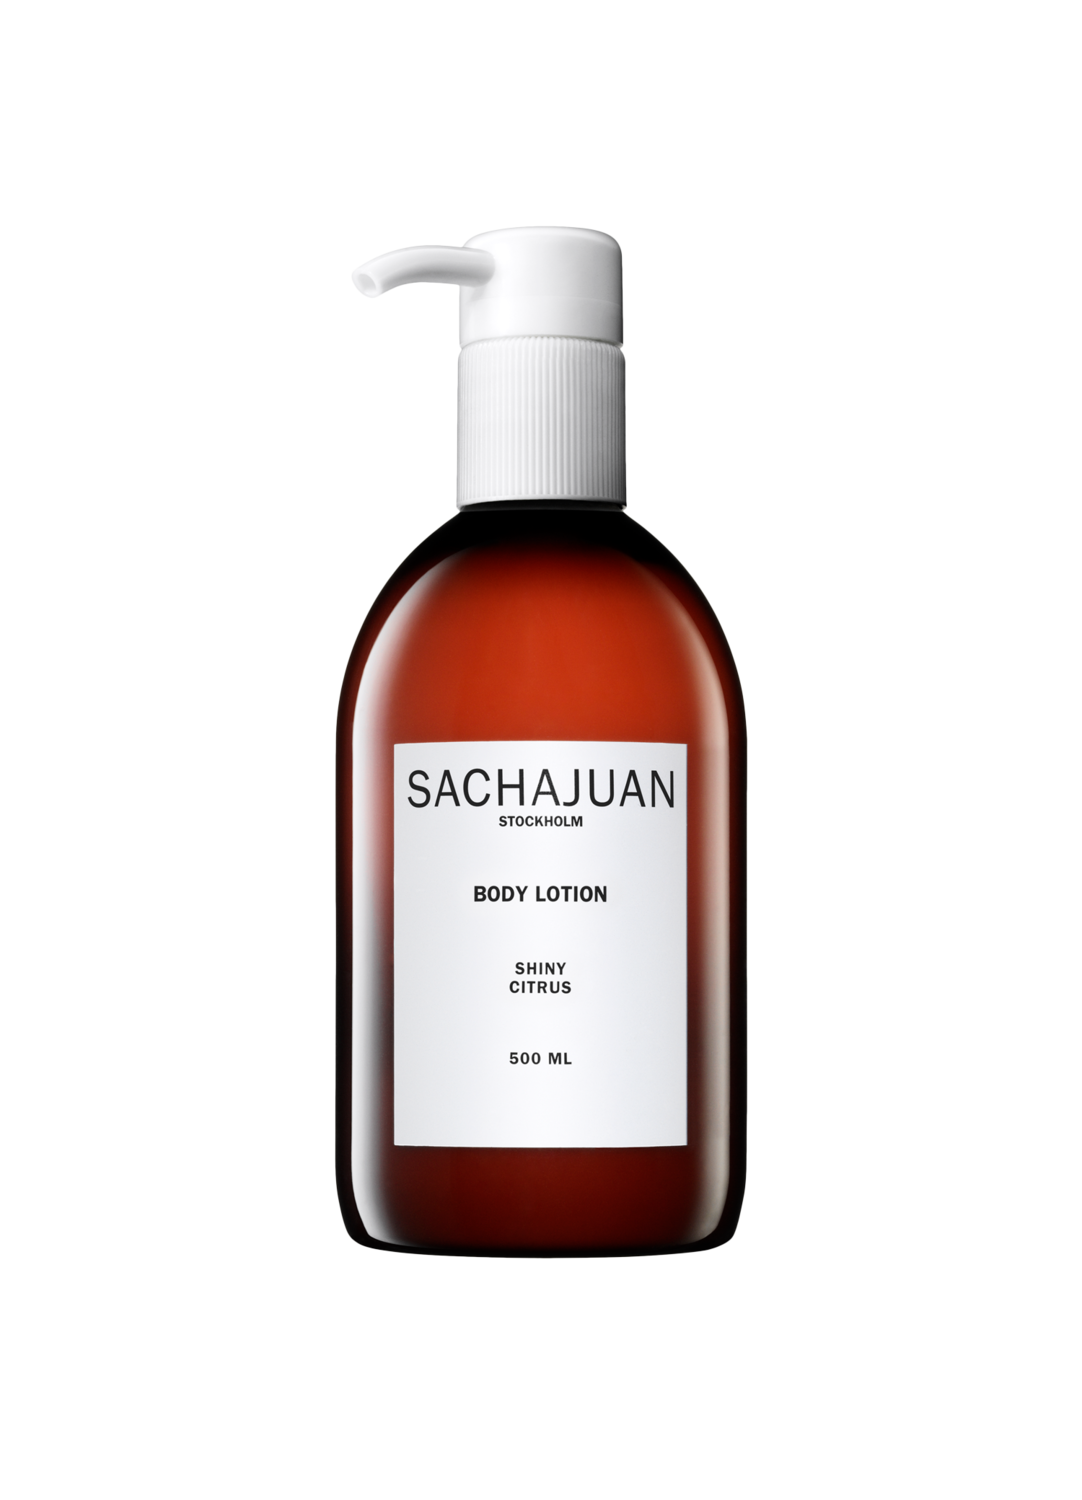 sachajuan | body lotion - shiny citrus[product_type ]sachajuan - Kiss and Makeup